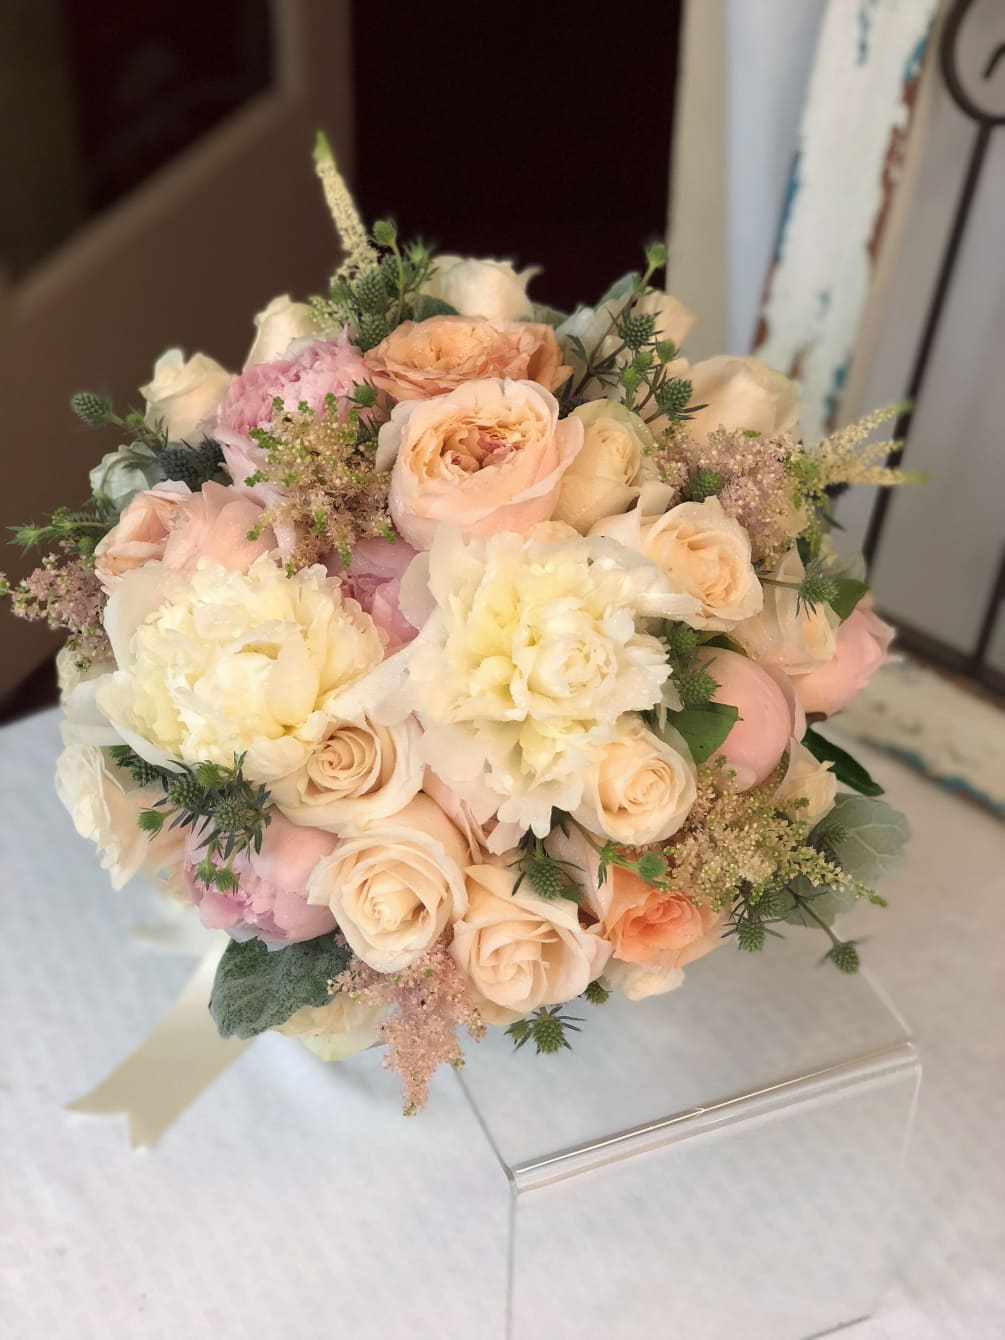 The Stunning Garden Style Bouquet Is Beautifully Designed With Garden Roses,  Peony